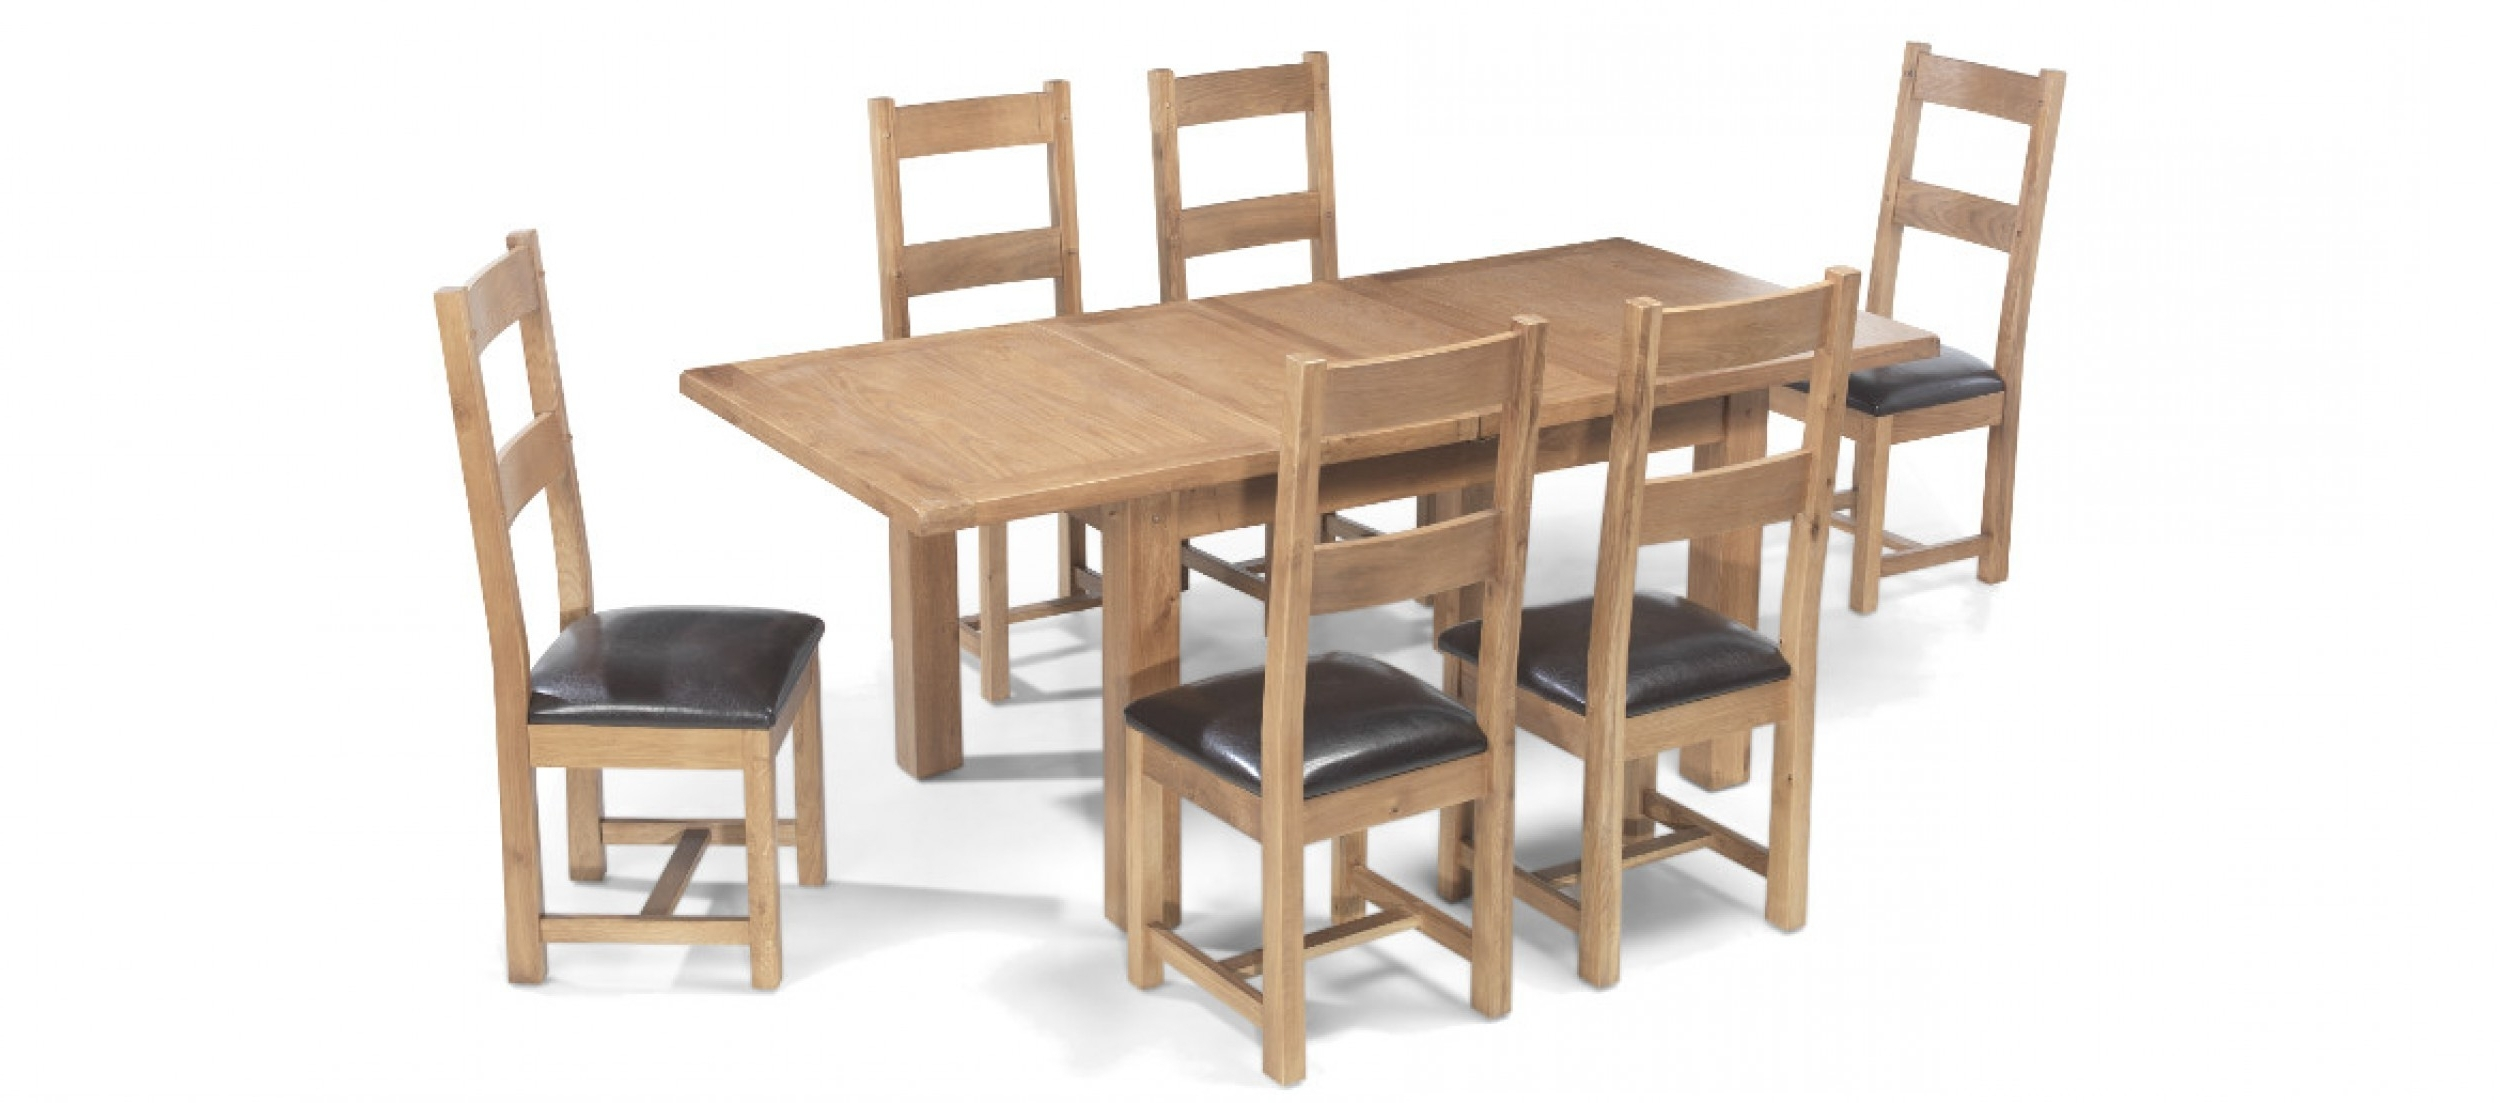 Extendable Dining Table And 6 Chairs within Recent Rustic Oak 132-198 Cm Extending Dining Table And 6 Chairs